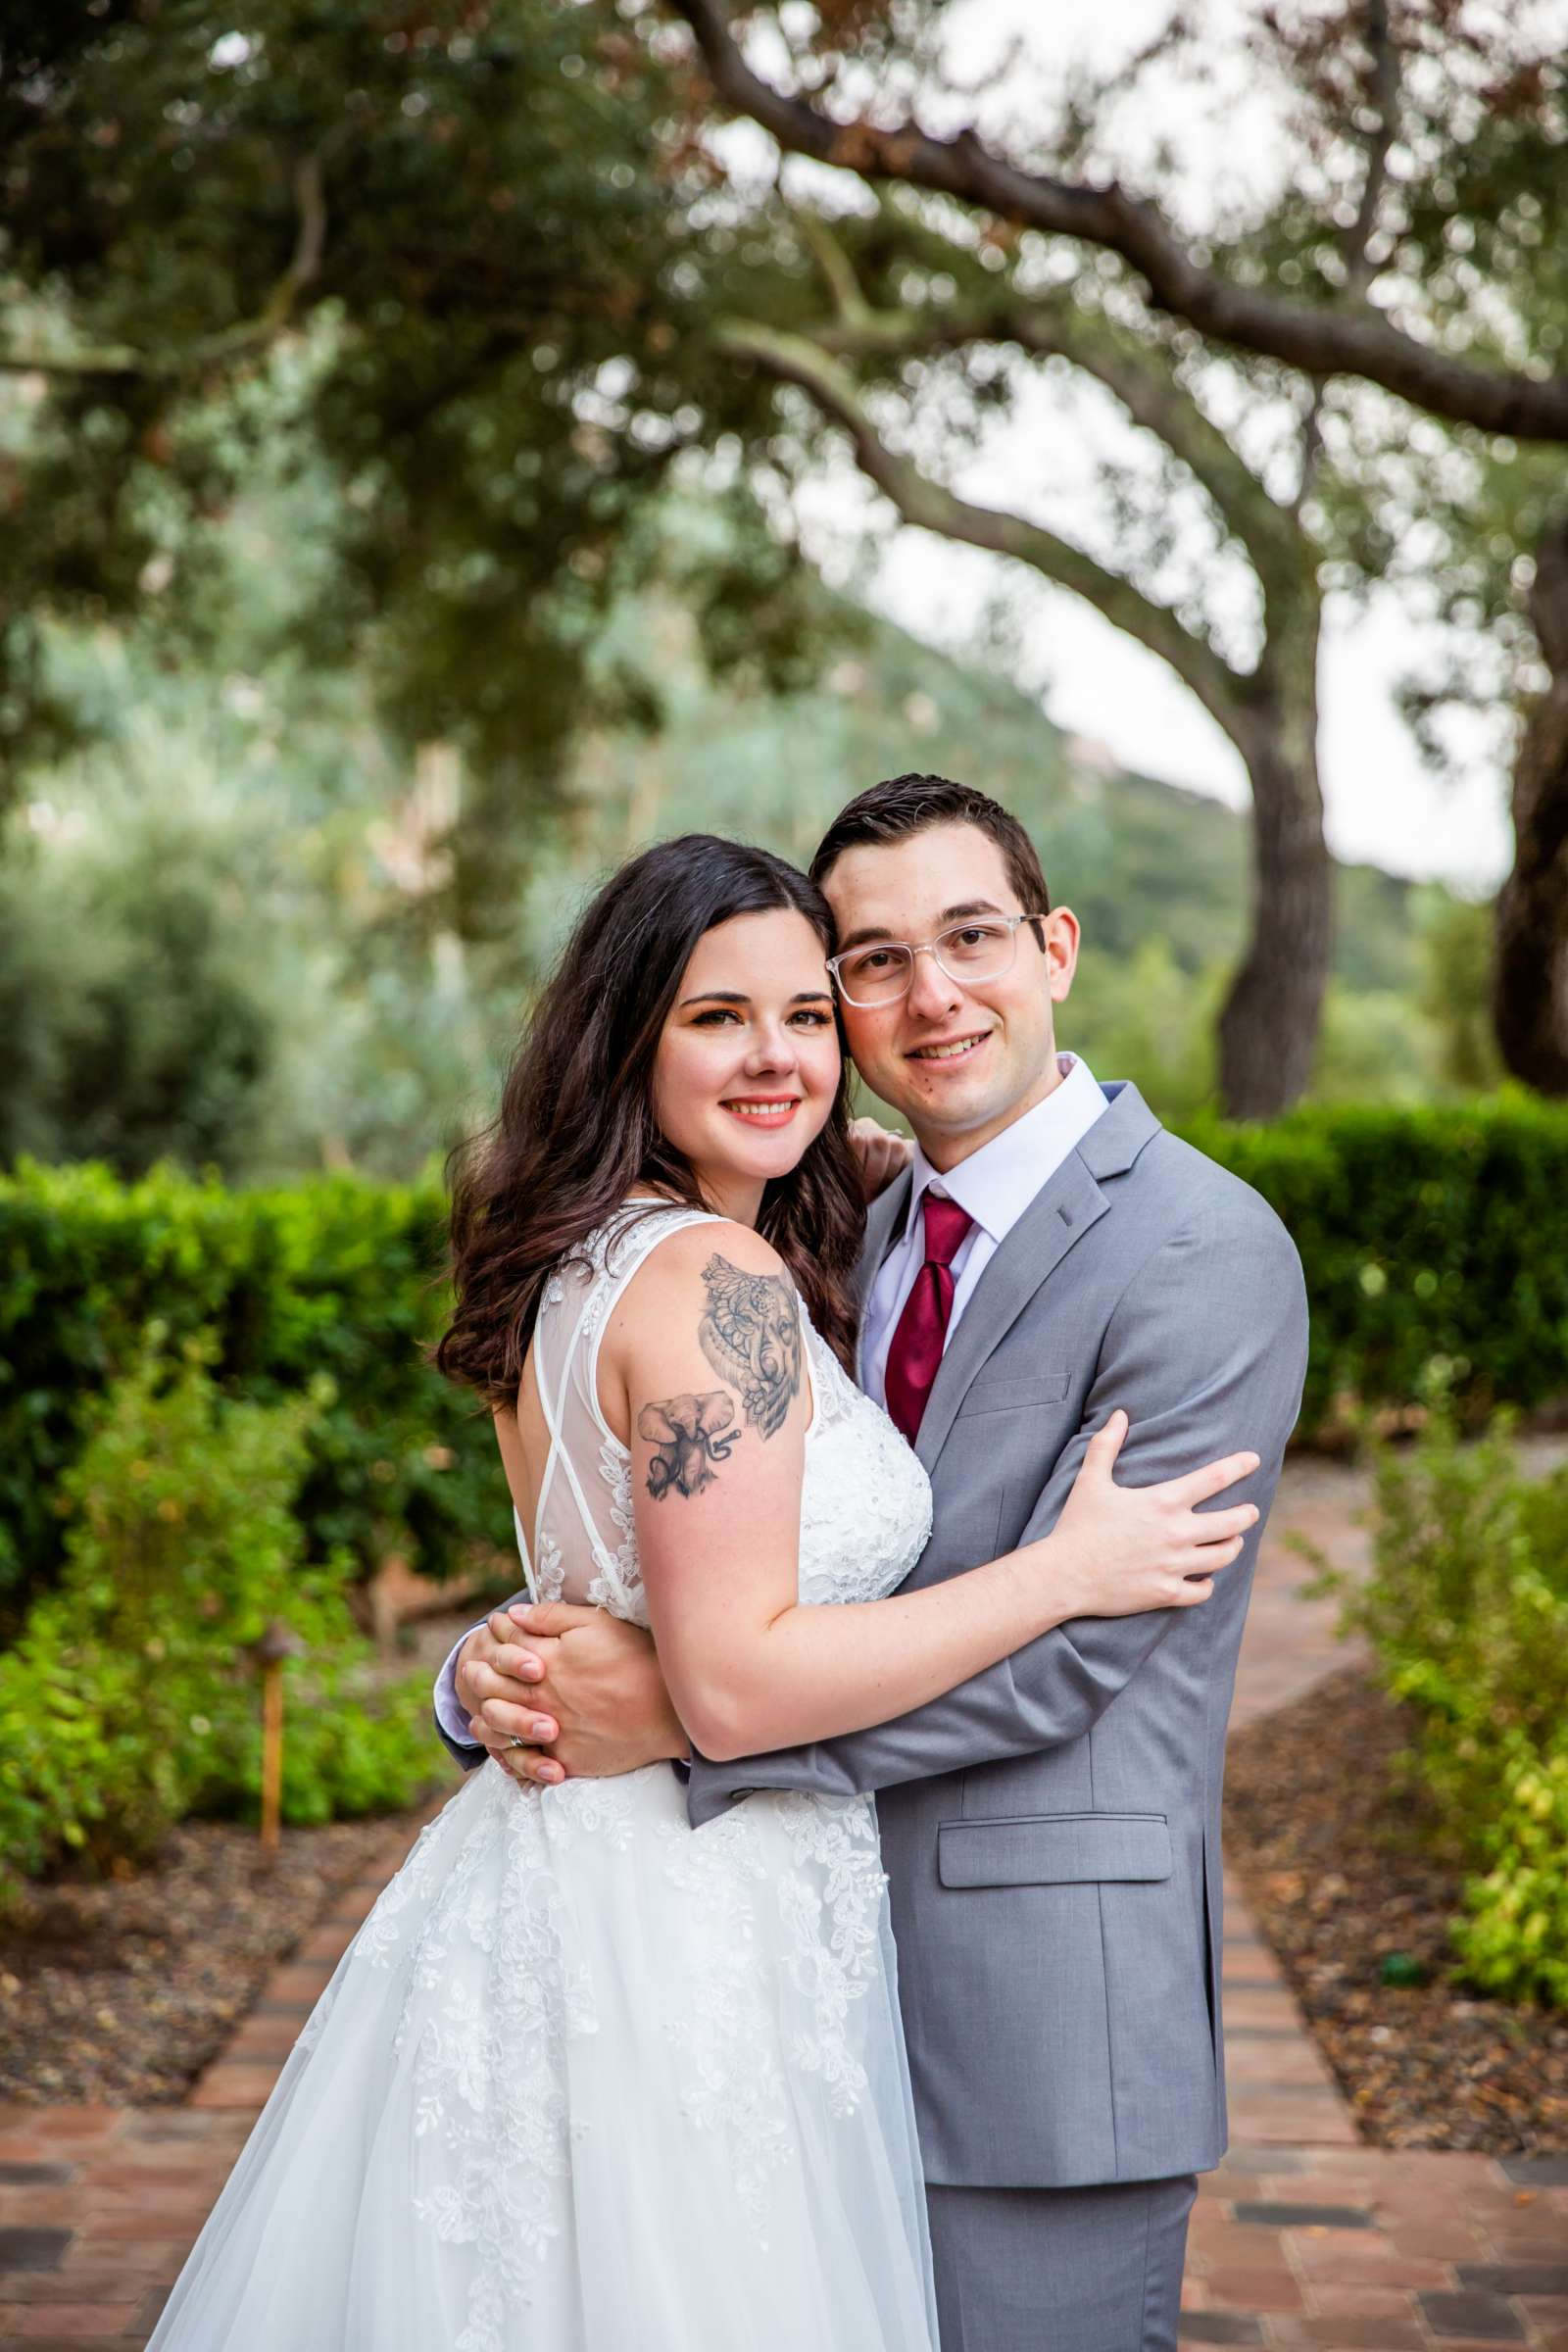 Mt Woodson Castle Wedding, Valerie and Ian Wedding Photo #28 by True Photography